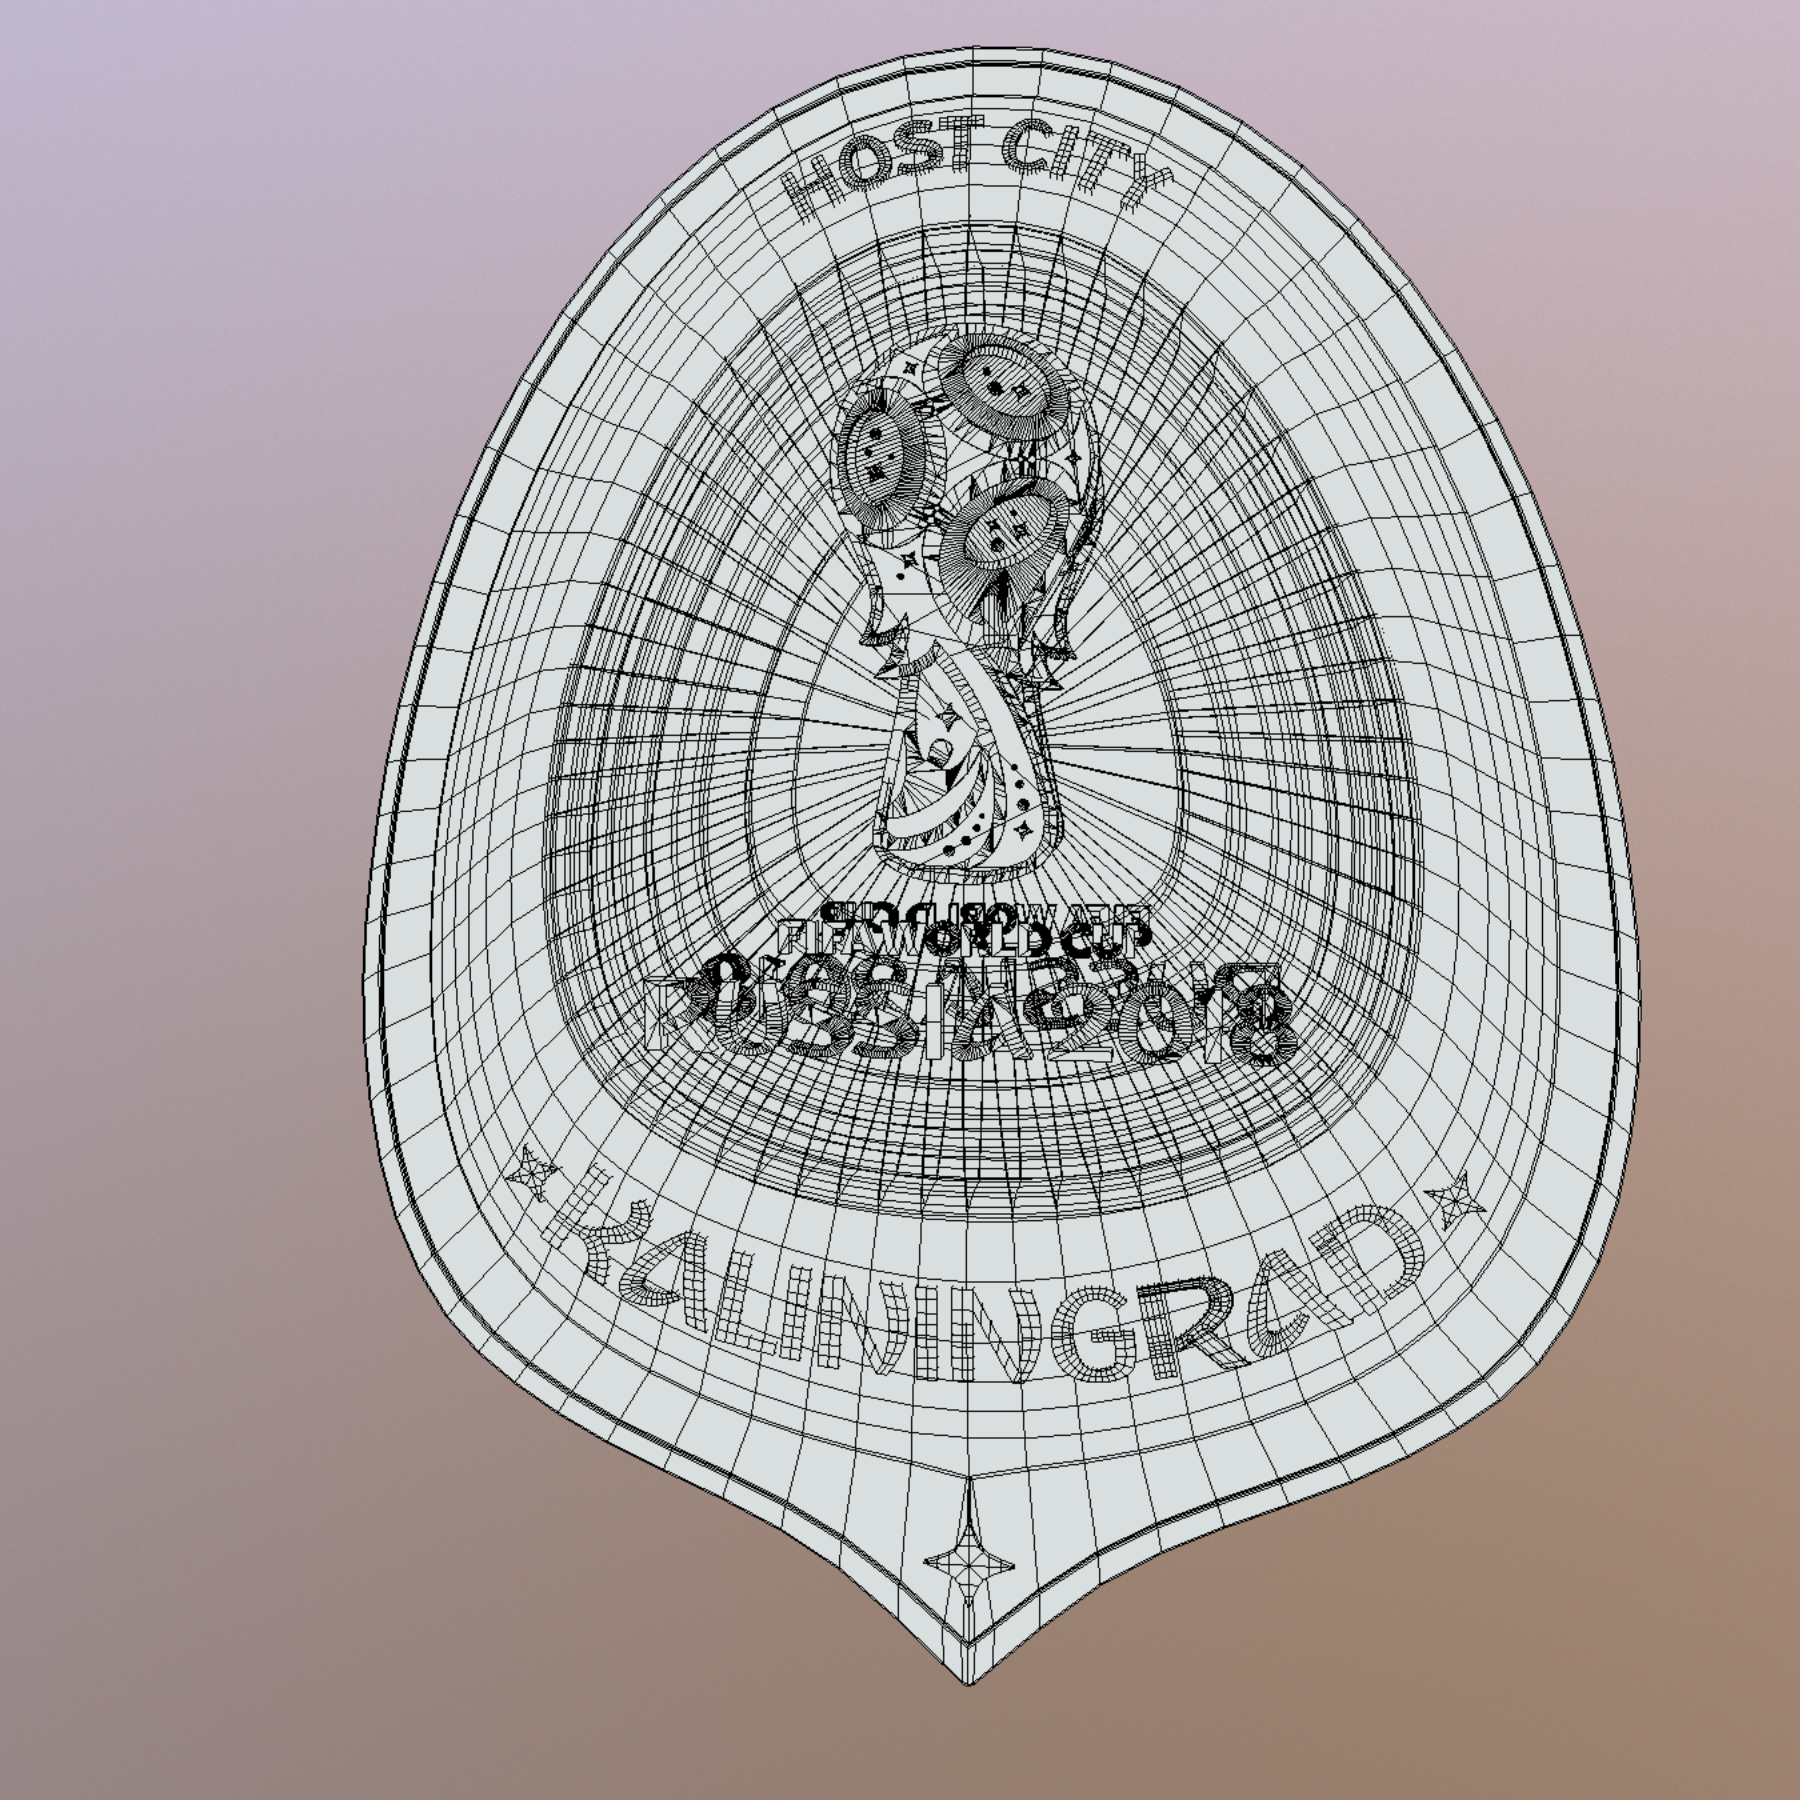 kaliningrad city world cup Rusija 2018 simbol 3d model max fbx jpeg jpg ma mb obj 271766